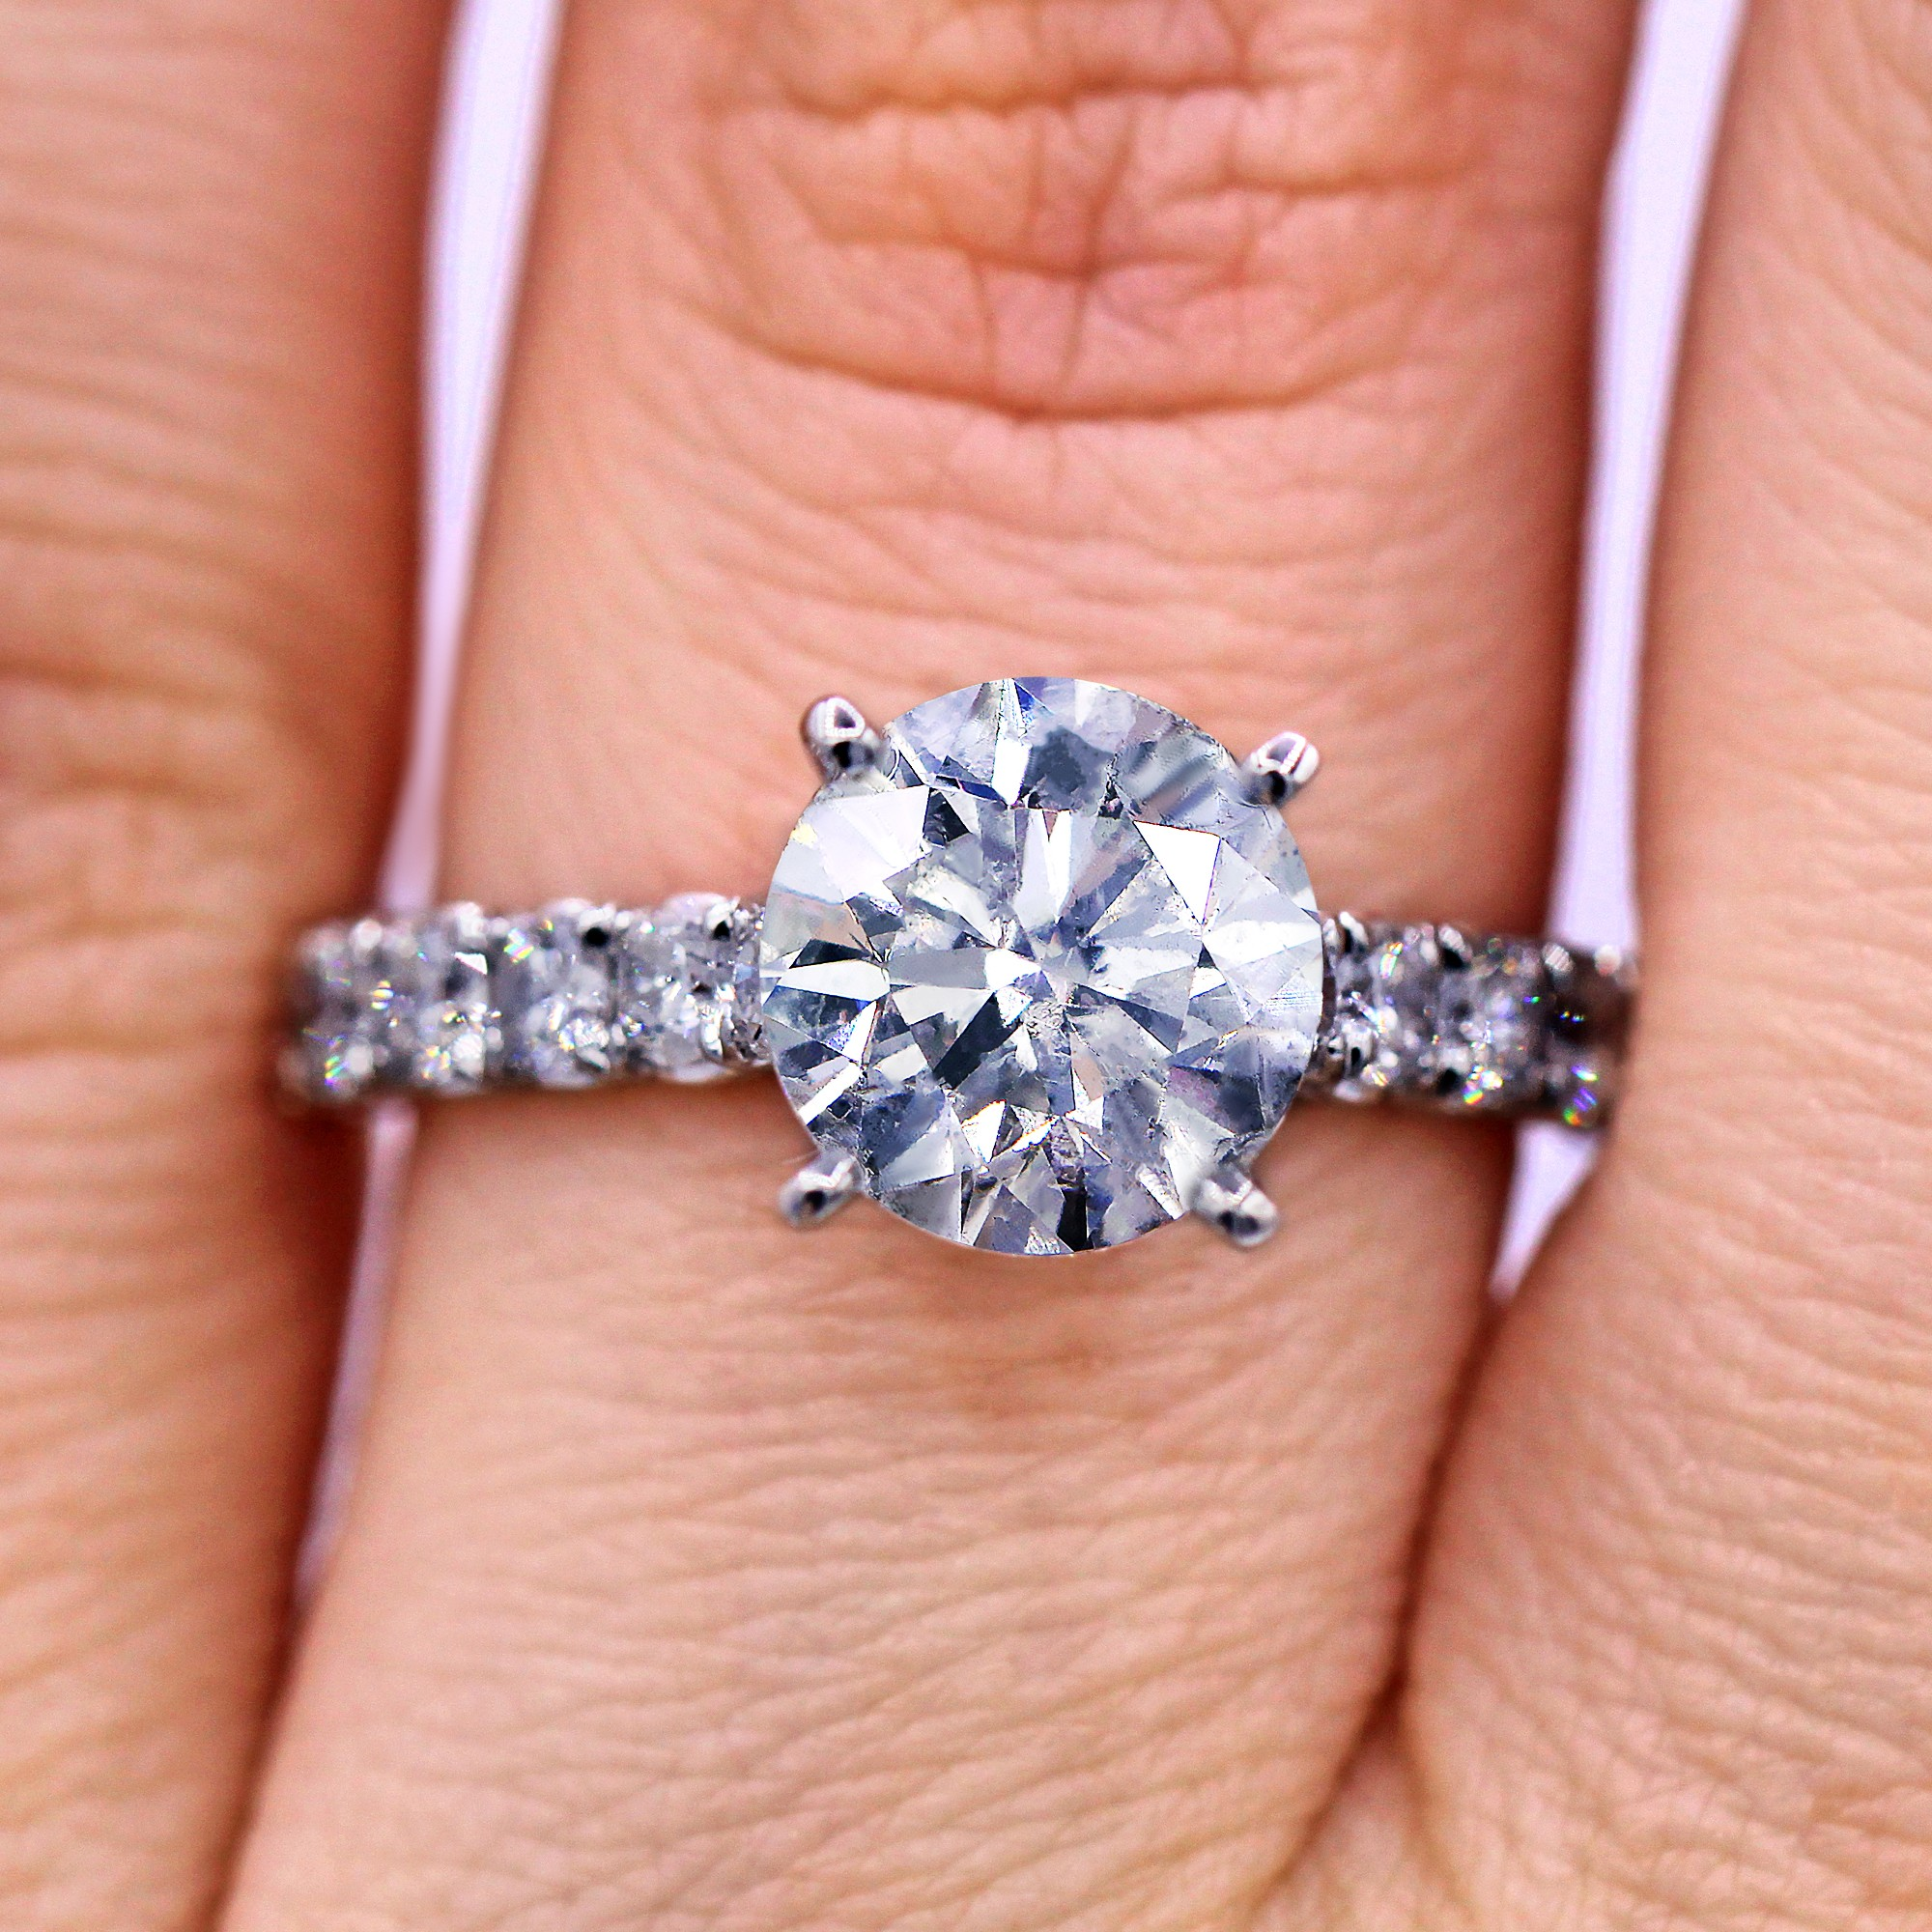 Dazzling 3.05 cts  diamond engagement ring